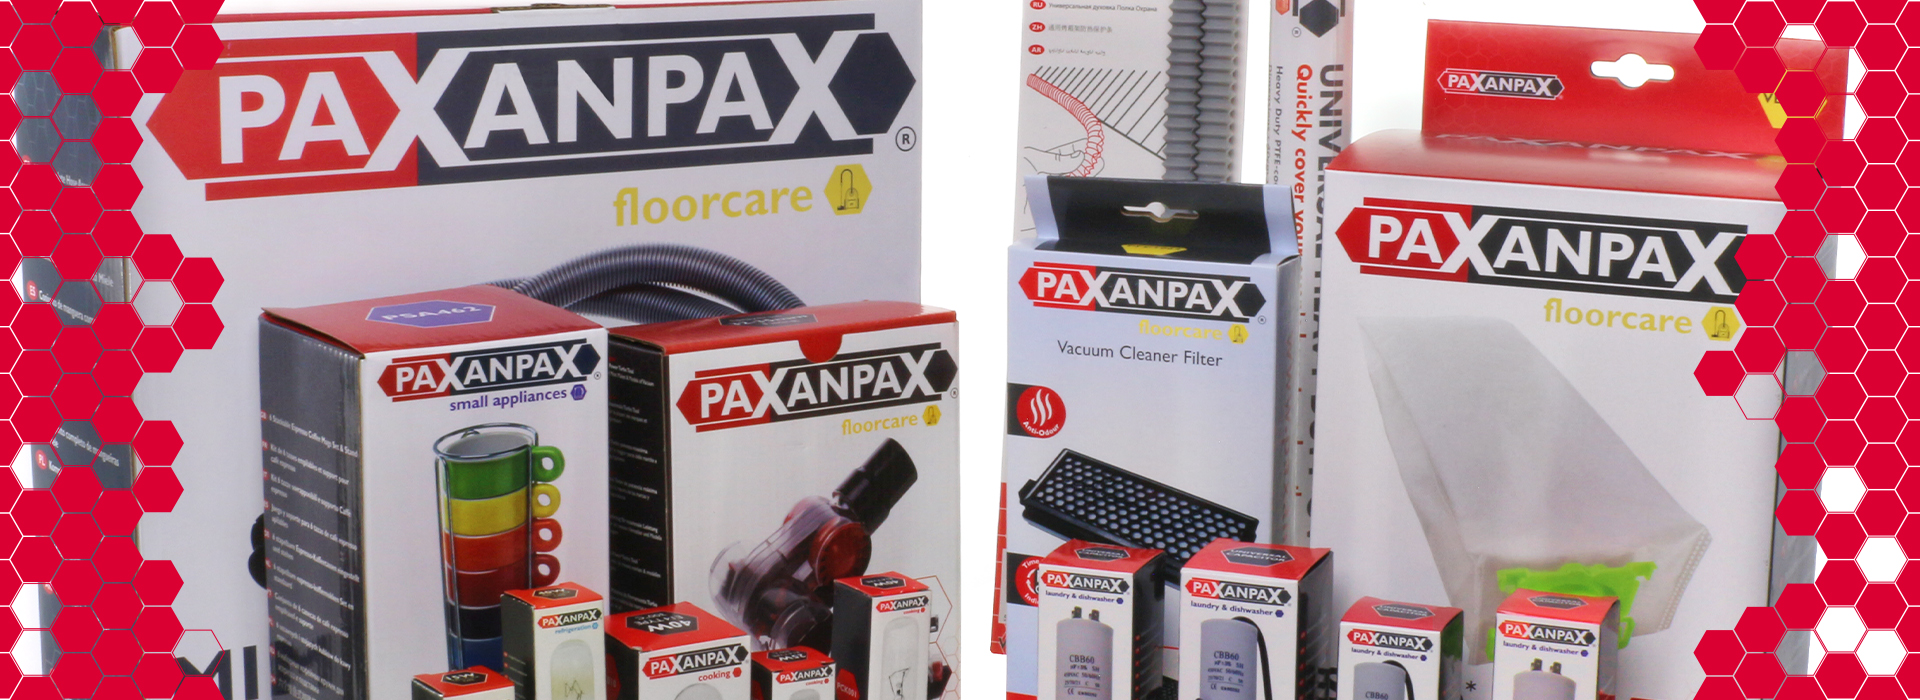 Paxanpax for End Users